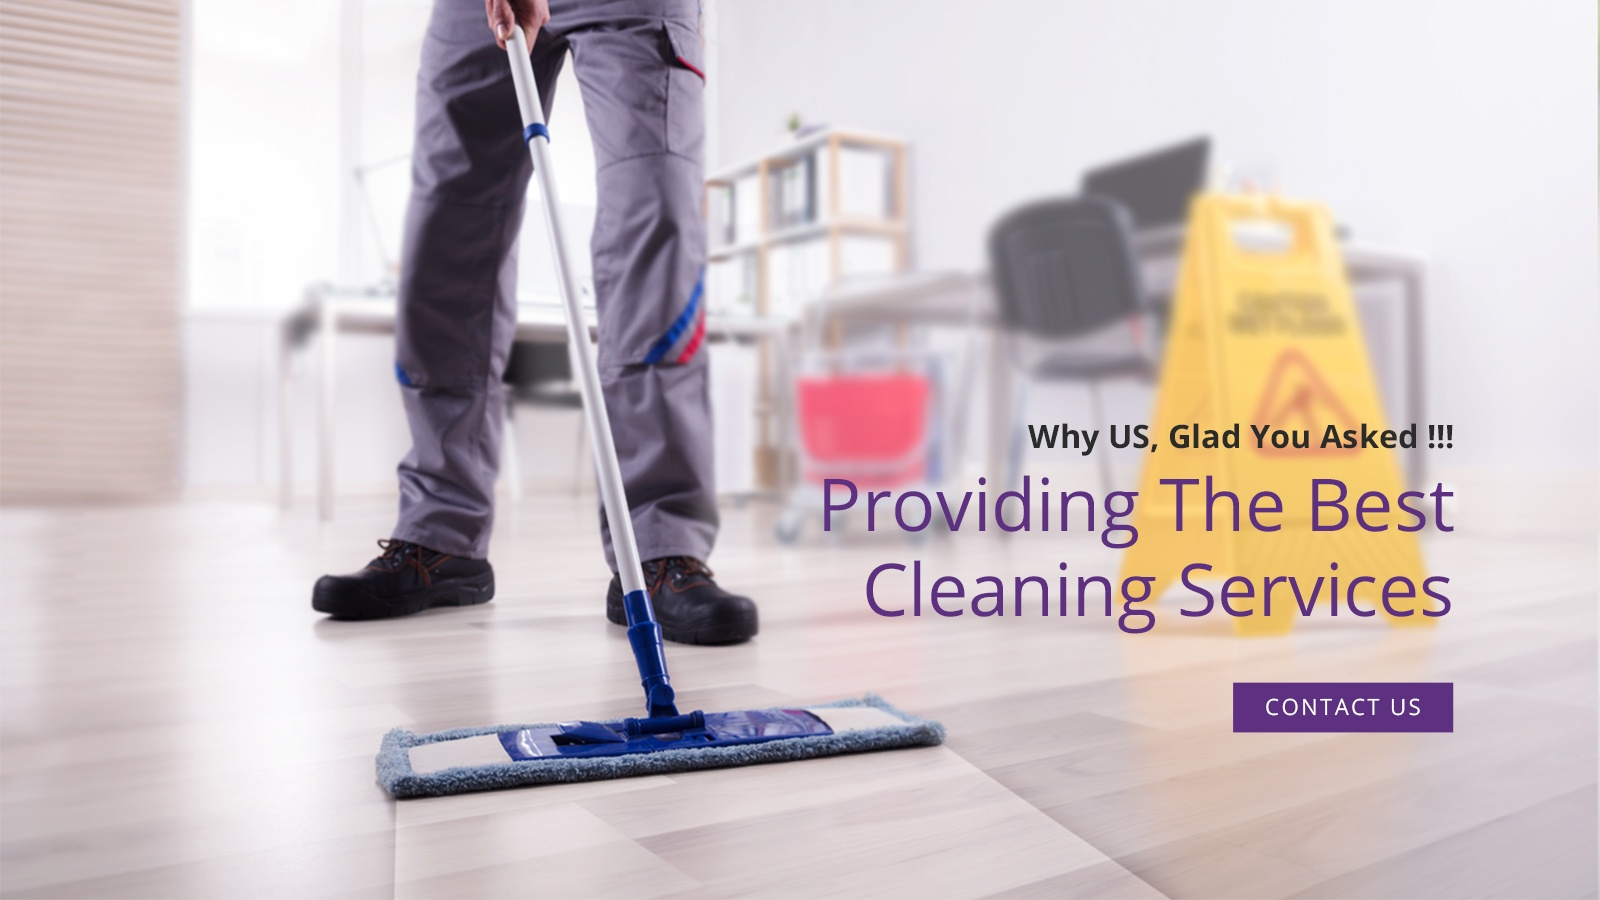 Providing The Best Cleaning Services - Xtremee Cleaning Services Inc.